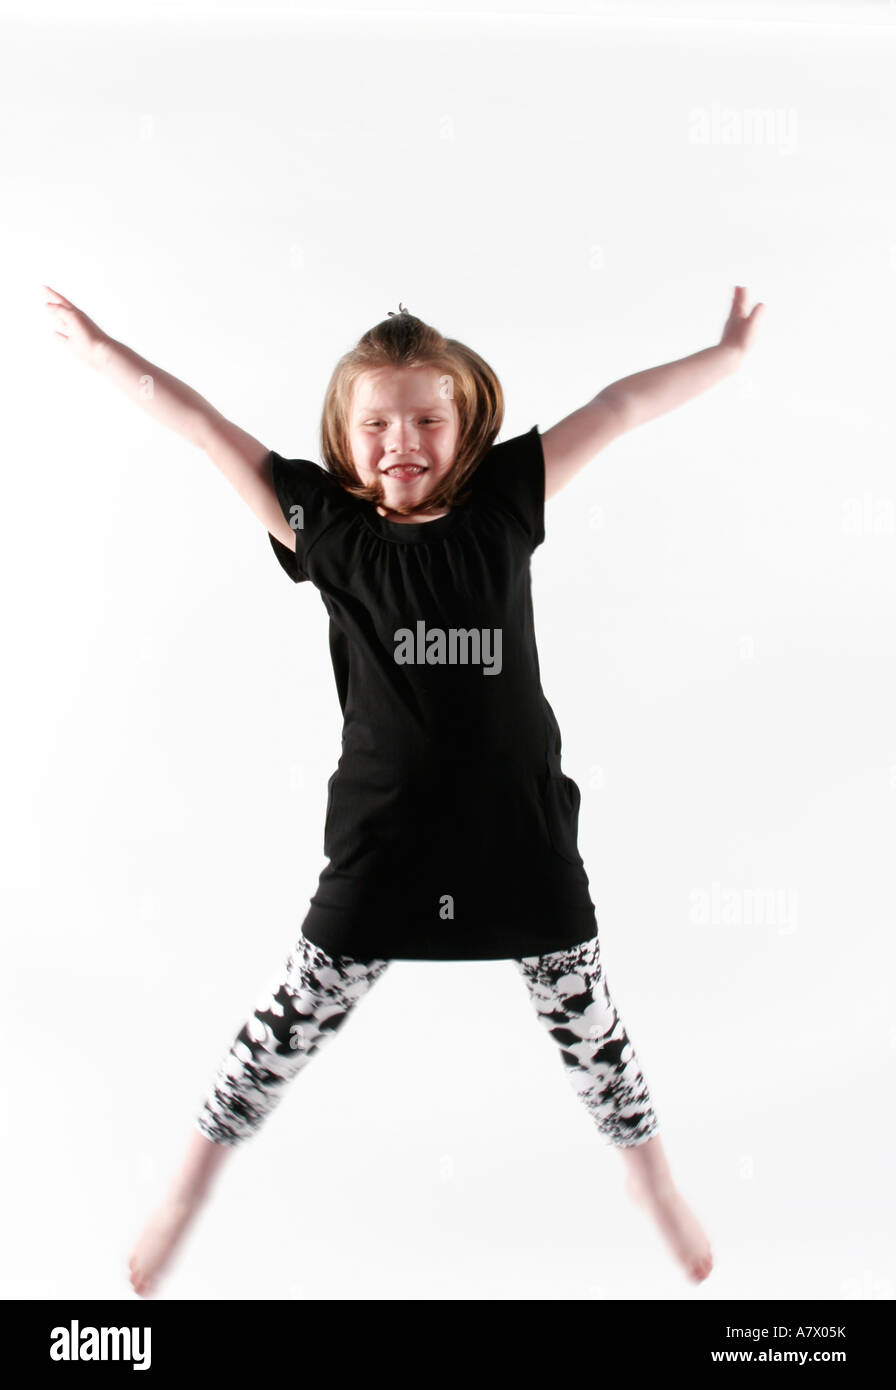 Girl does a star jump, captured mid air - Stock Image